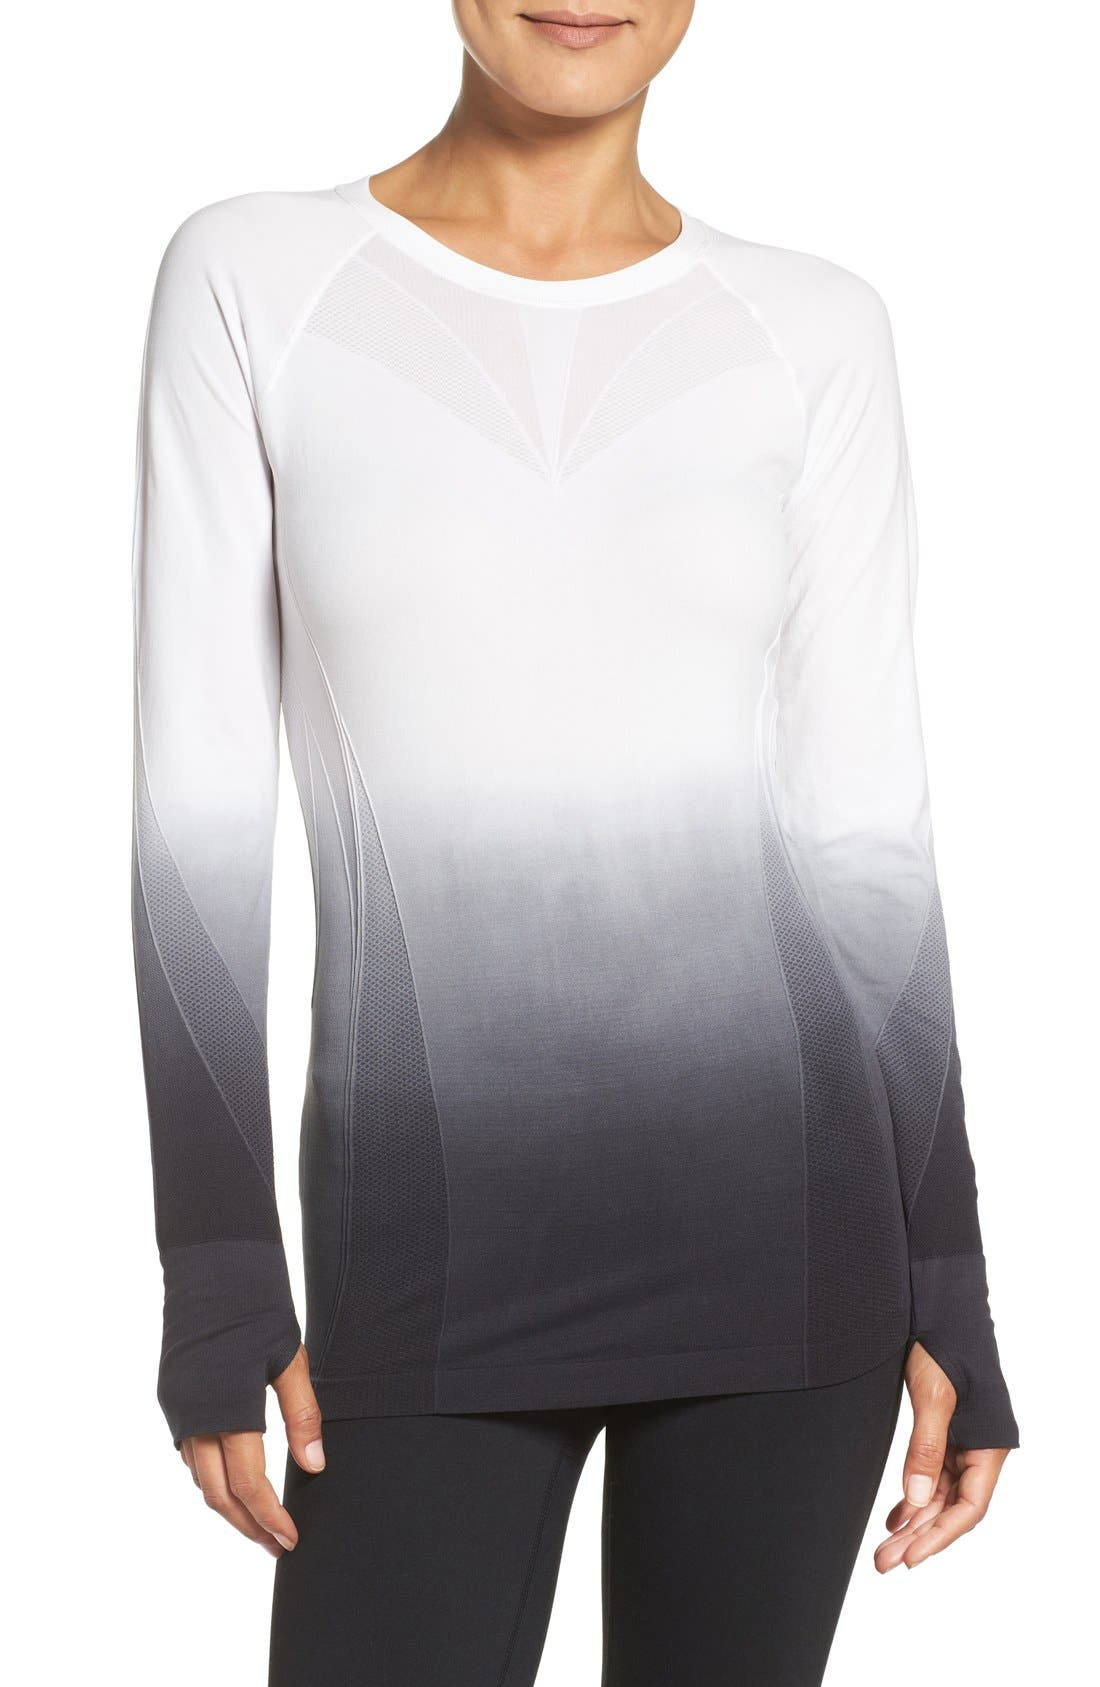 CLIMAWEAR Dip Dye Long Sleeve Top